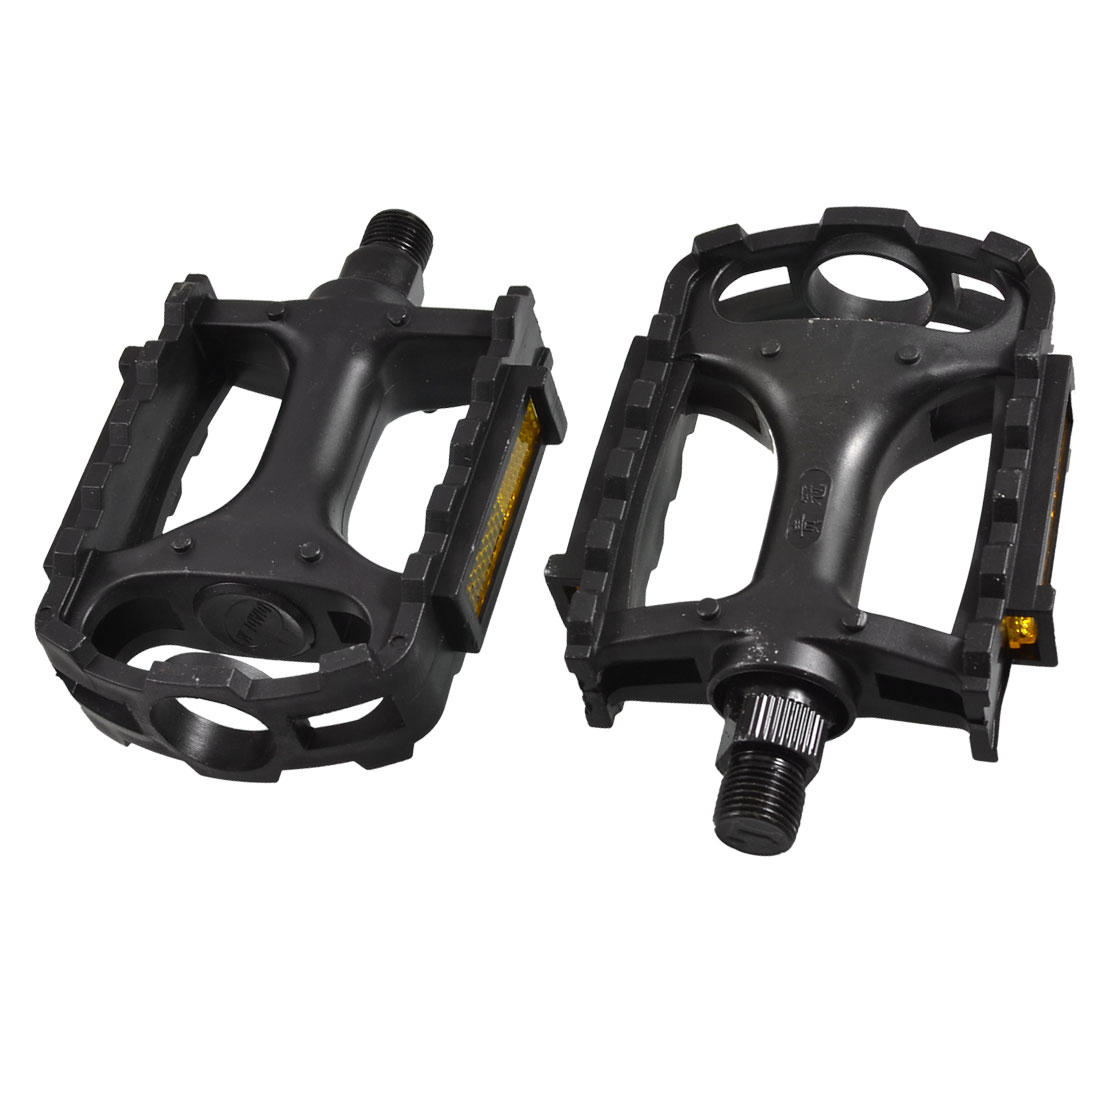 Mountain Road Bike Black Plastic Platform Pedals Parts 2 Pcs